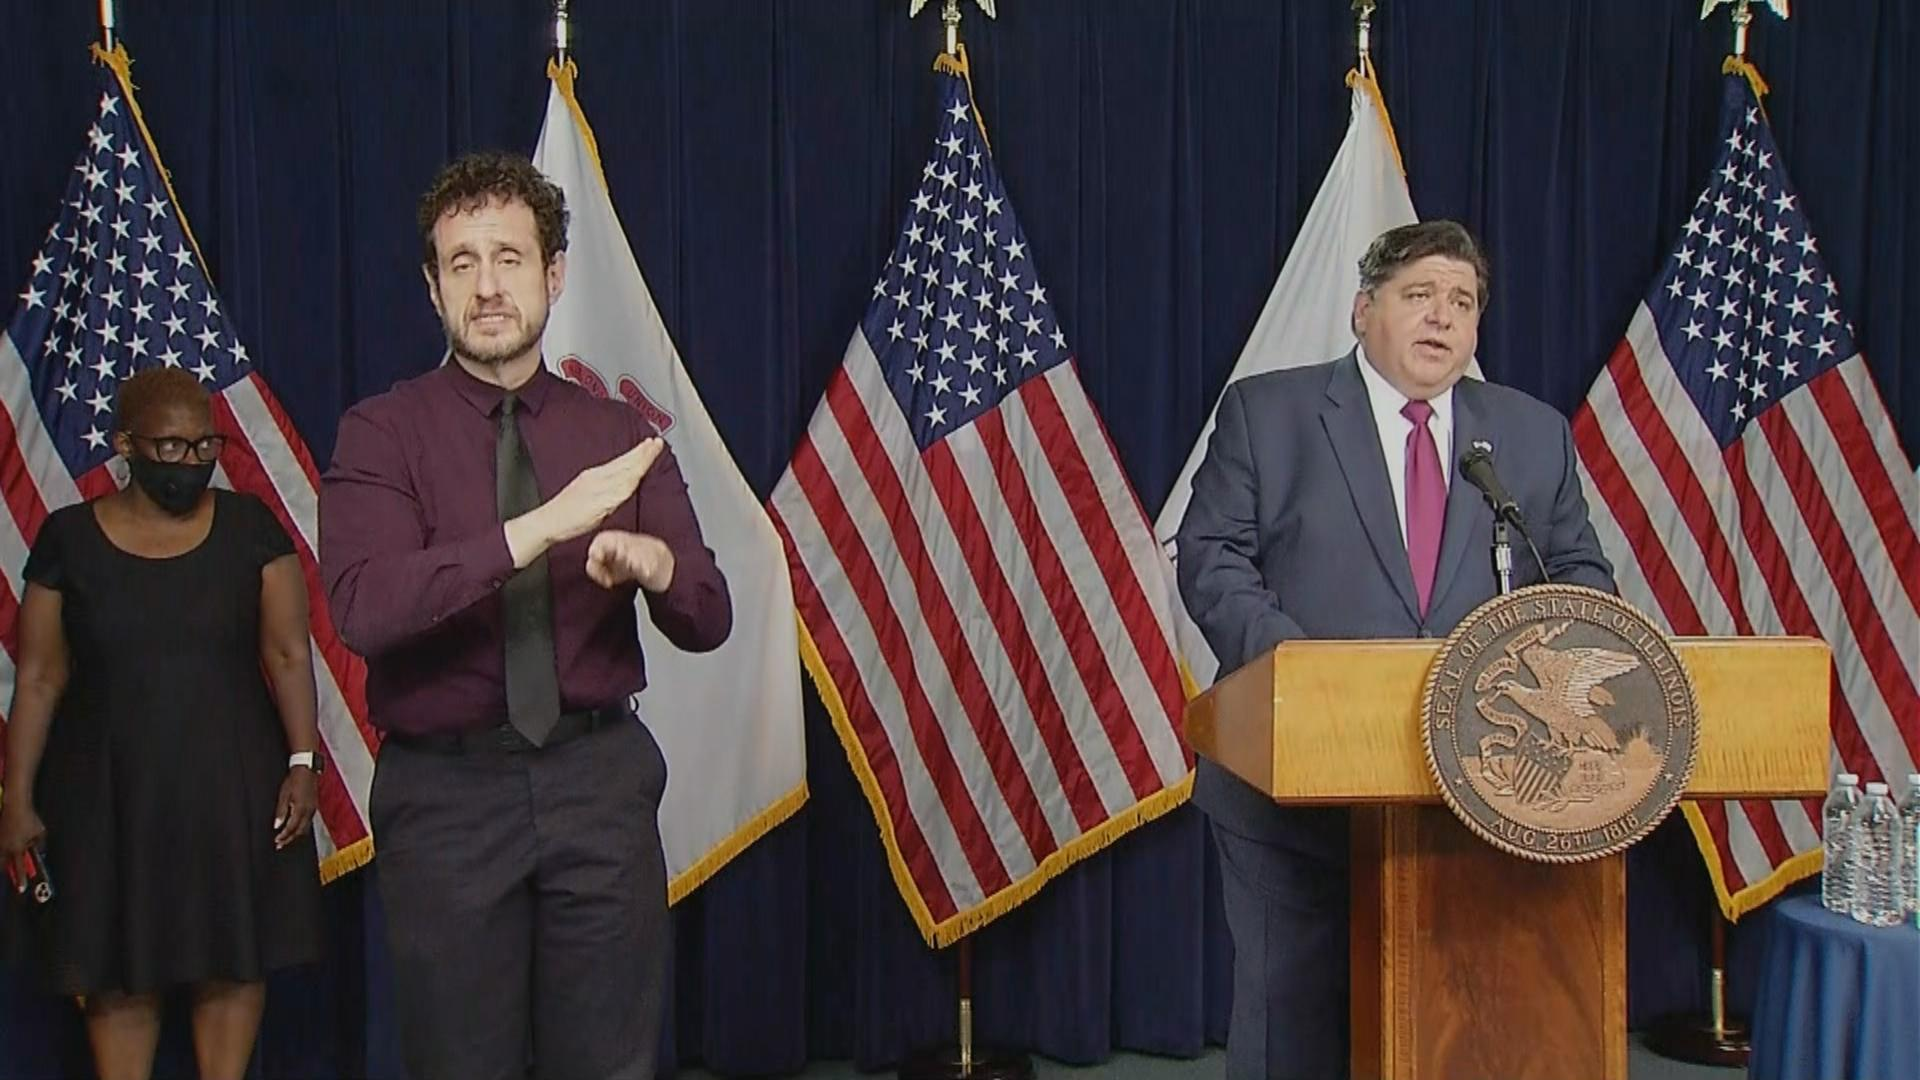 Gov. J.B. Pritzker announces Wednesday, Aug. 12, 2020 that $46 million in grants have been awarded to small businesses impacted by the coronavirus pandemic. (WTTW News)